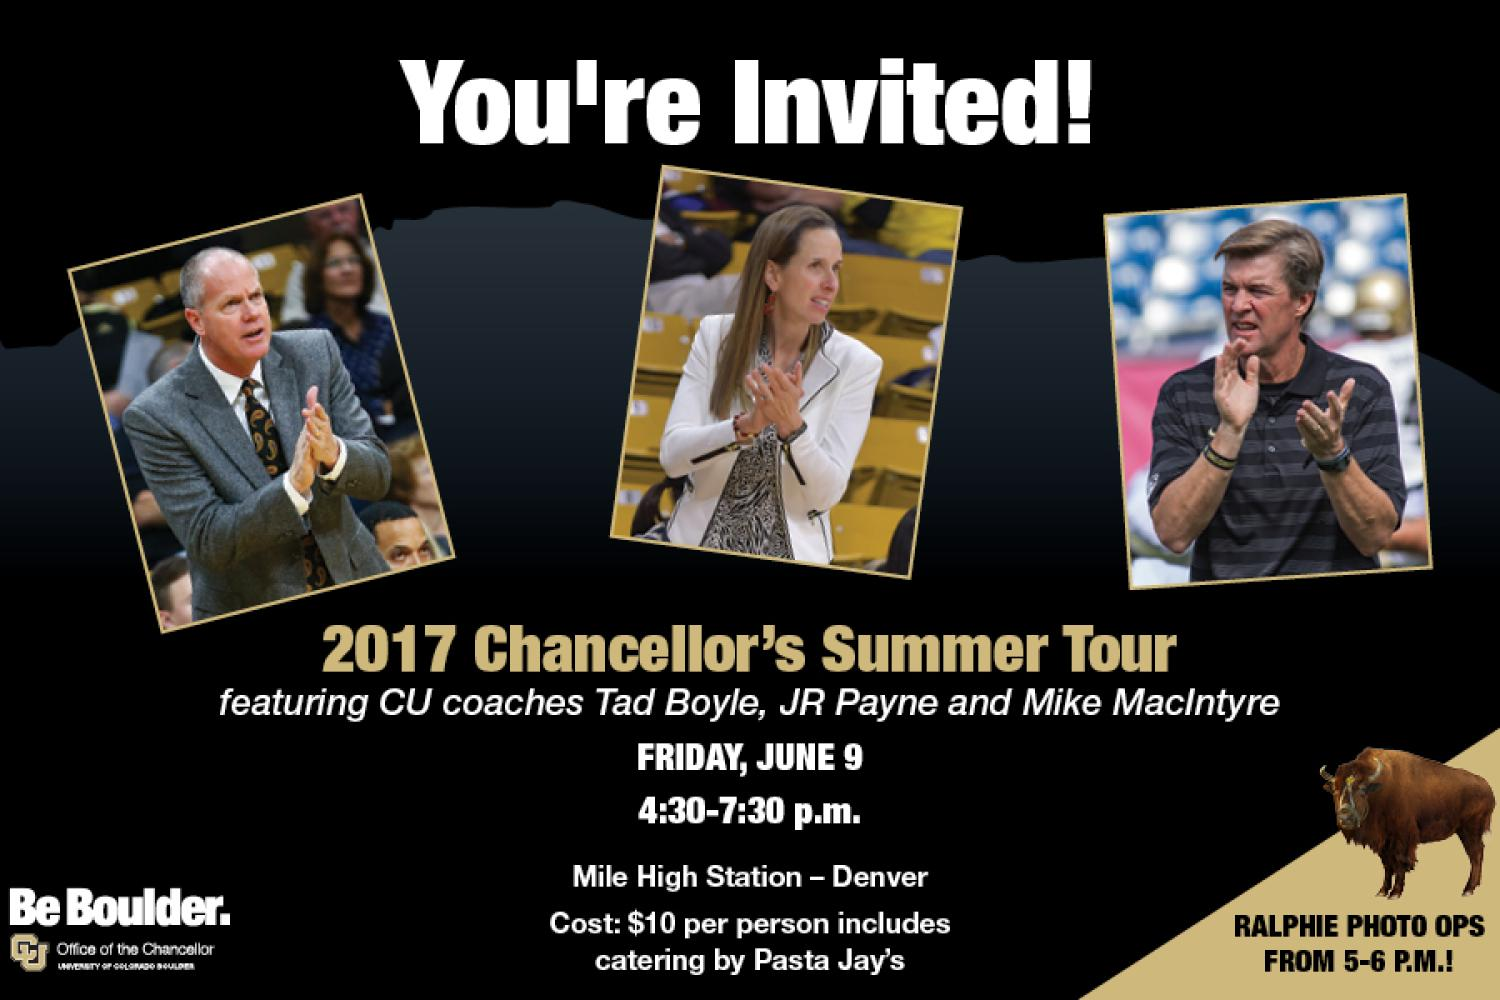 Chancellor's Tour is coming to Denver!